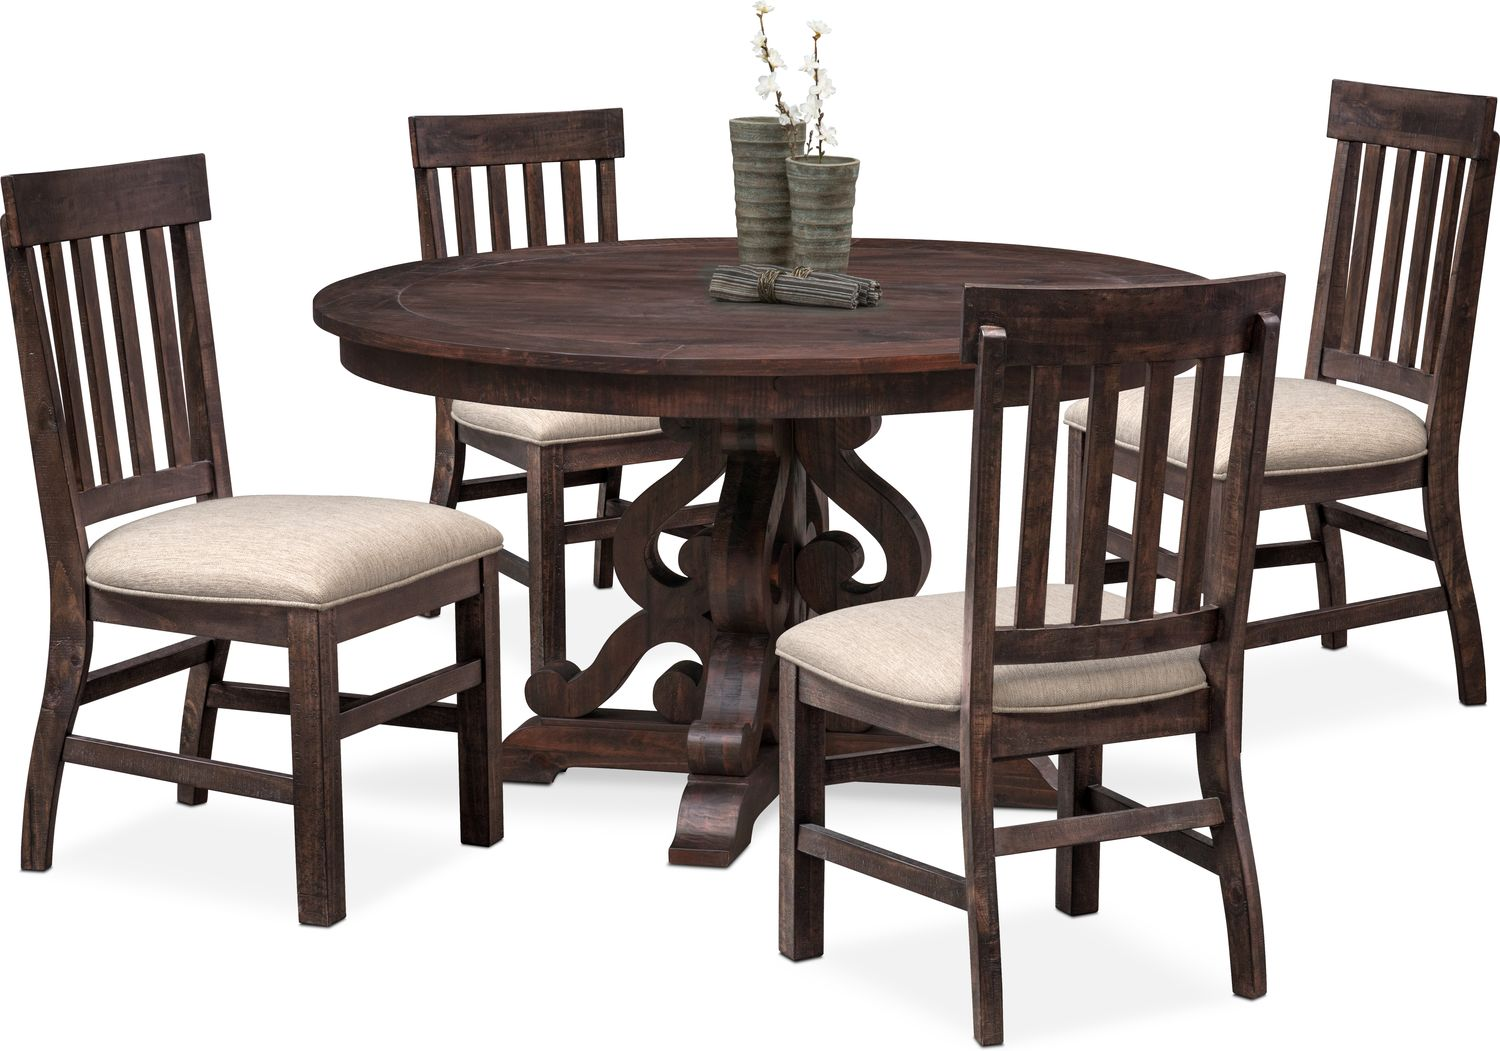 Circular Dining Table And Chairs: Charthouse Round Dining Table And 4 Side Chairs